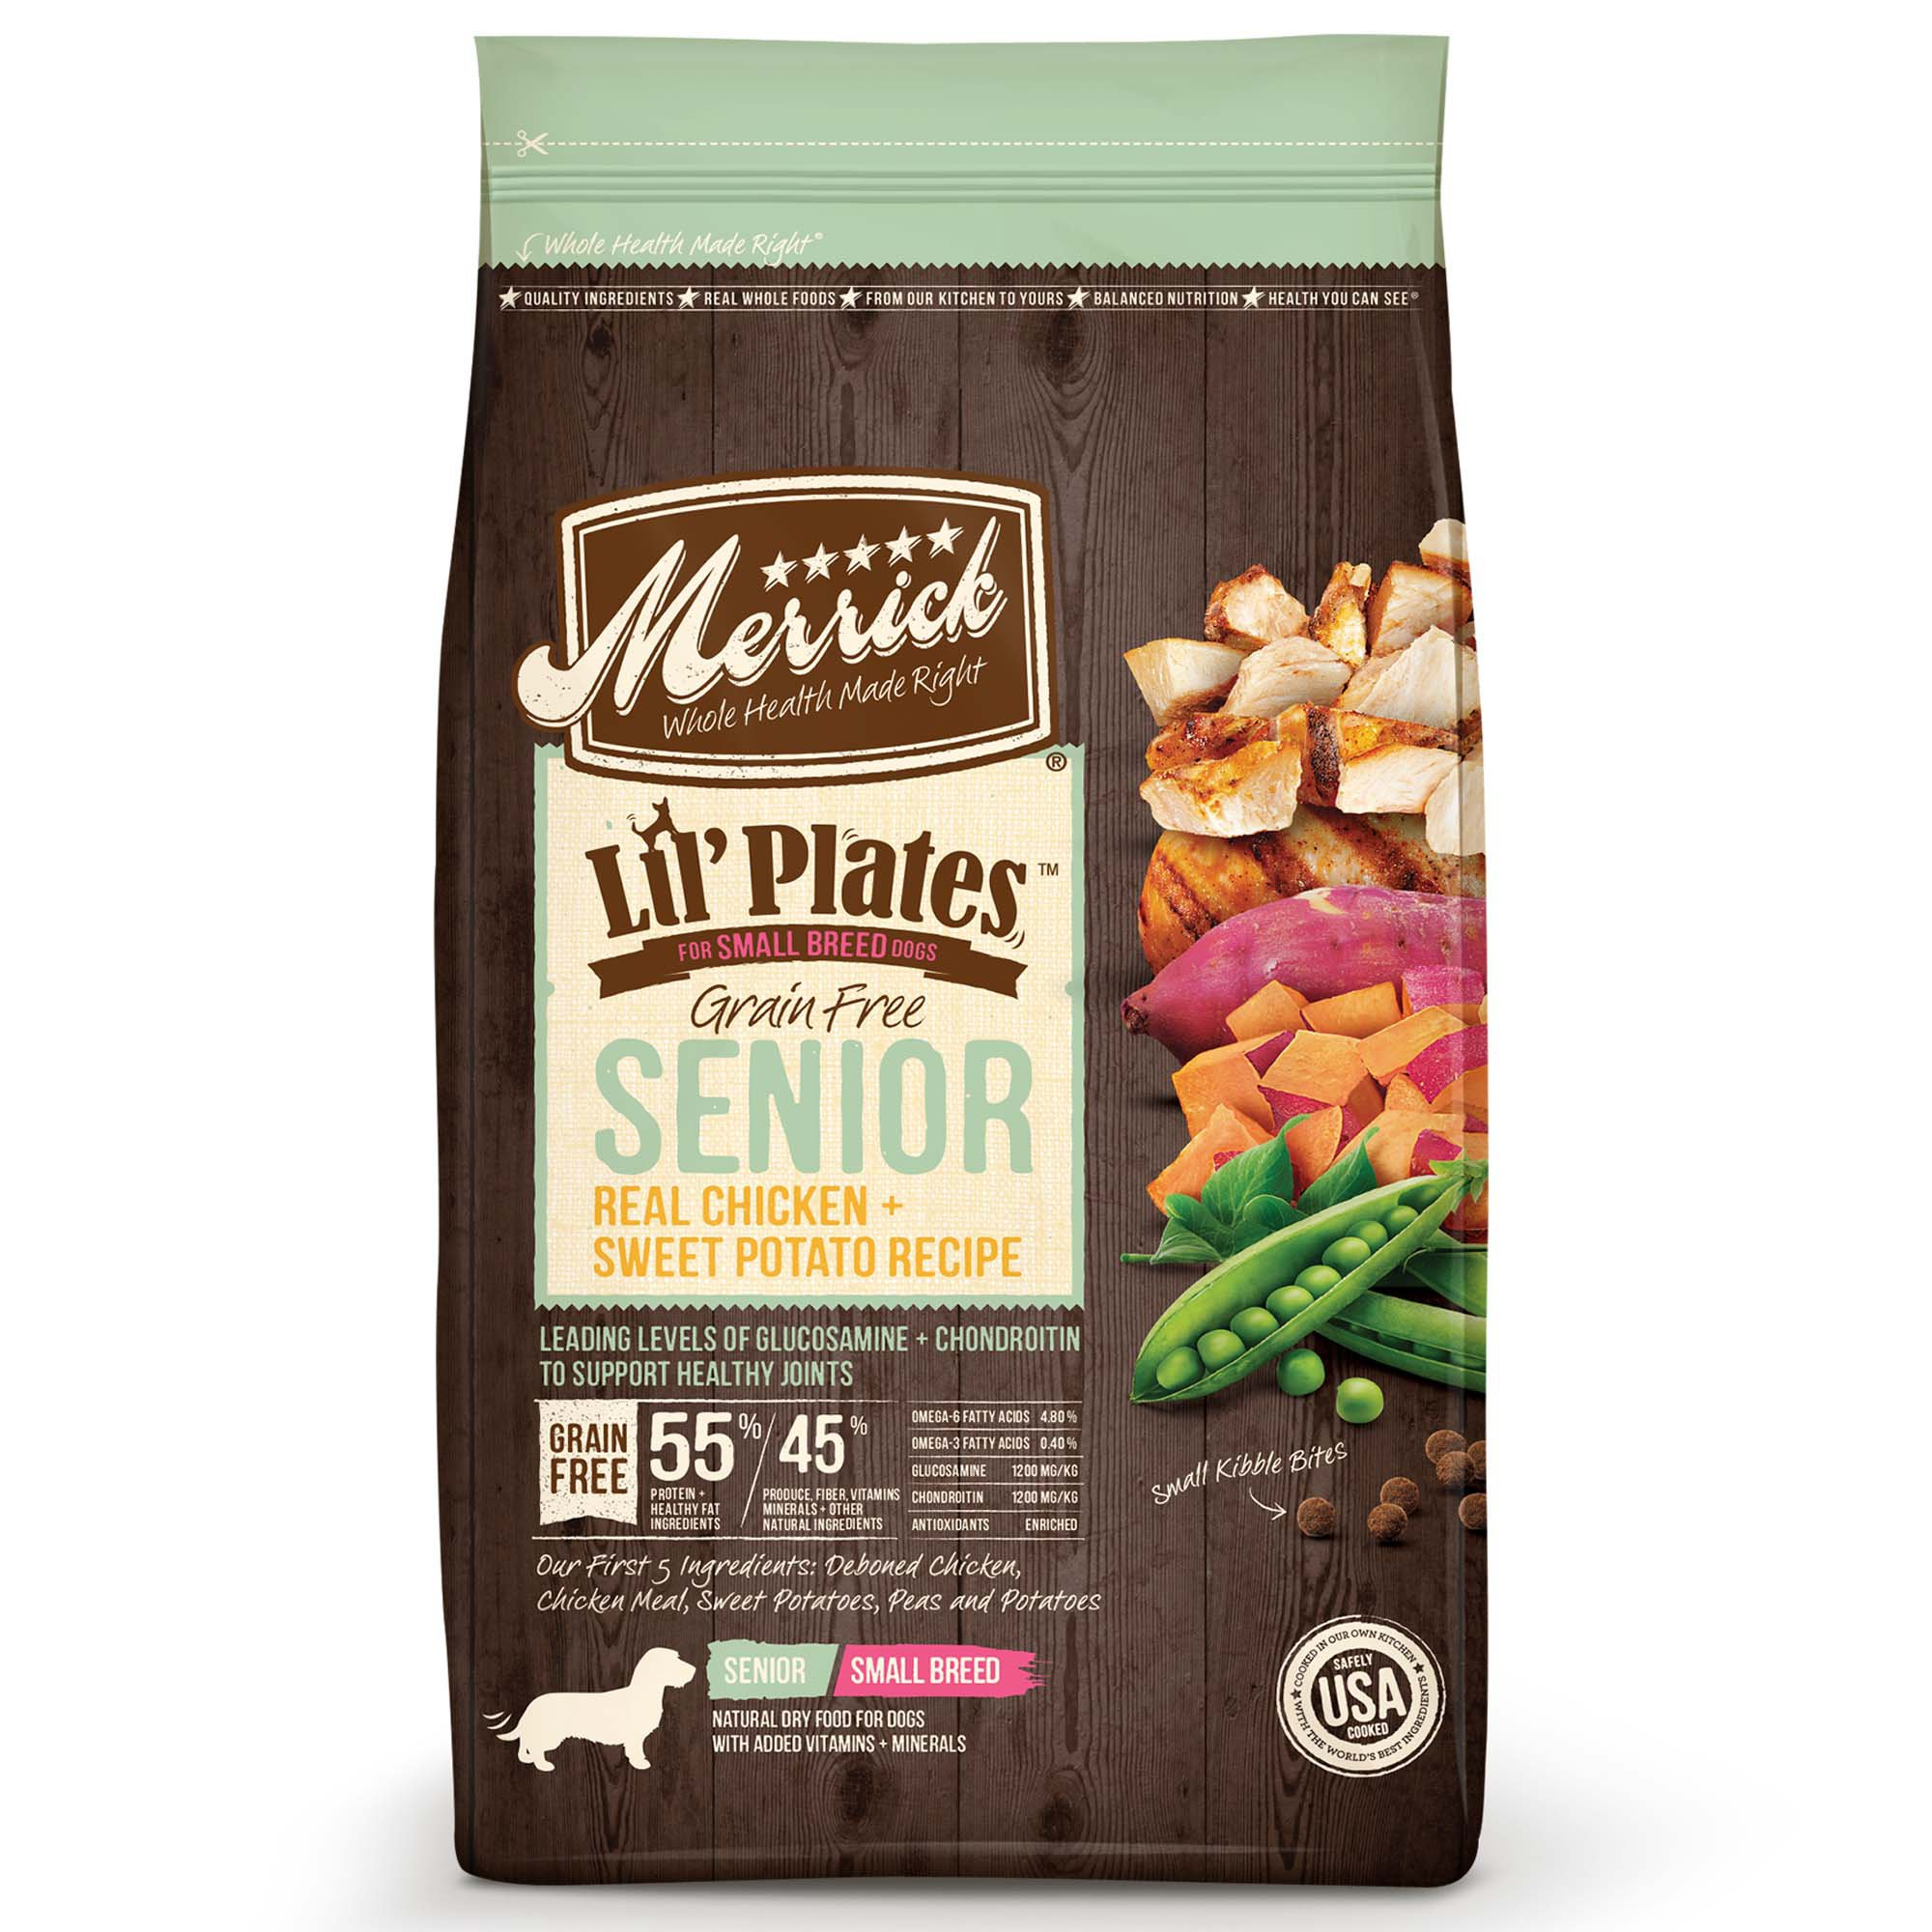 Merrick Lil' Plates Small Breed Grain Free Real Chicken + Sweet Potato Small Breed Senior Dry Dog Food, 12 lbs.